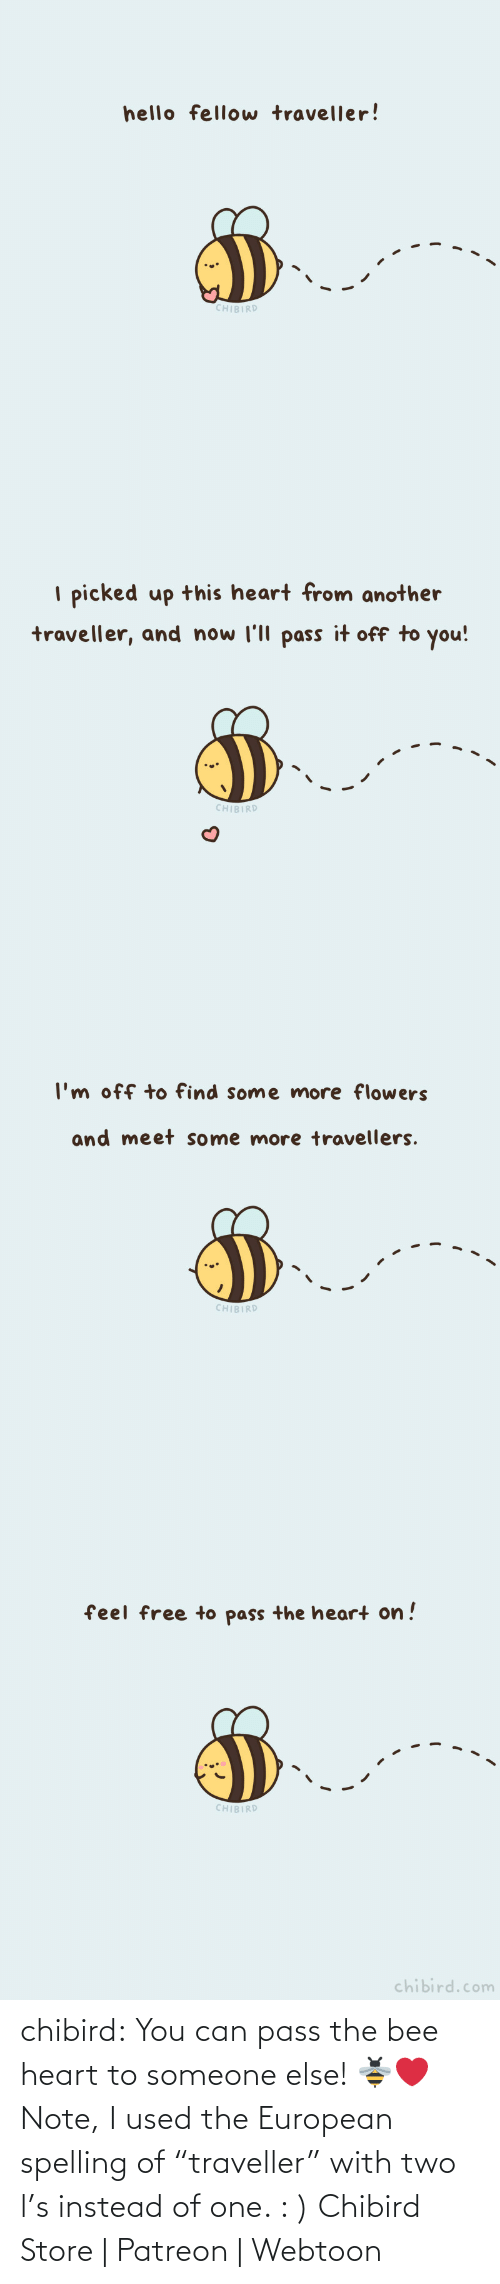 "spelling: chibird: You can pass the bee heart to someone else! 🐝❤️️  Note, I used the European spelling of ""traveller"" with two l's instead of one. : )   Chibird Store 